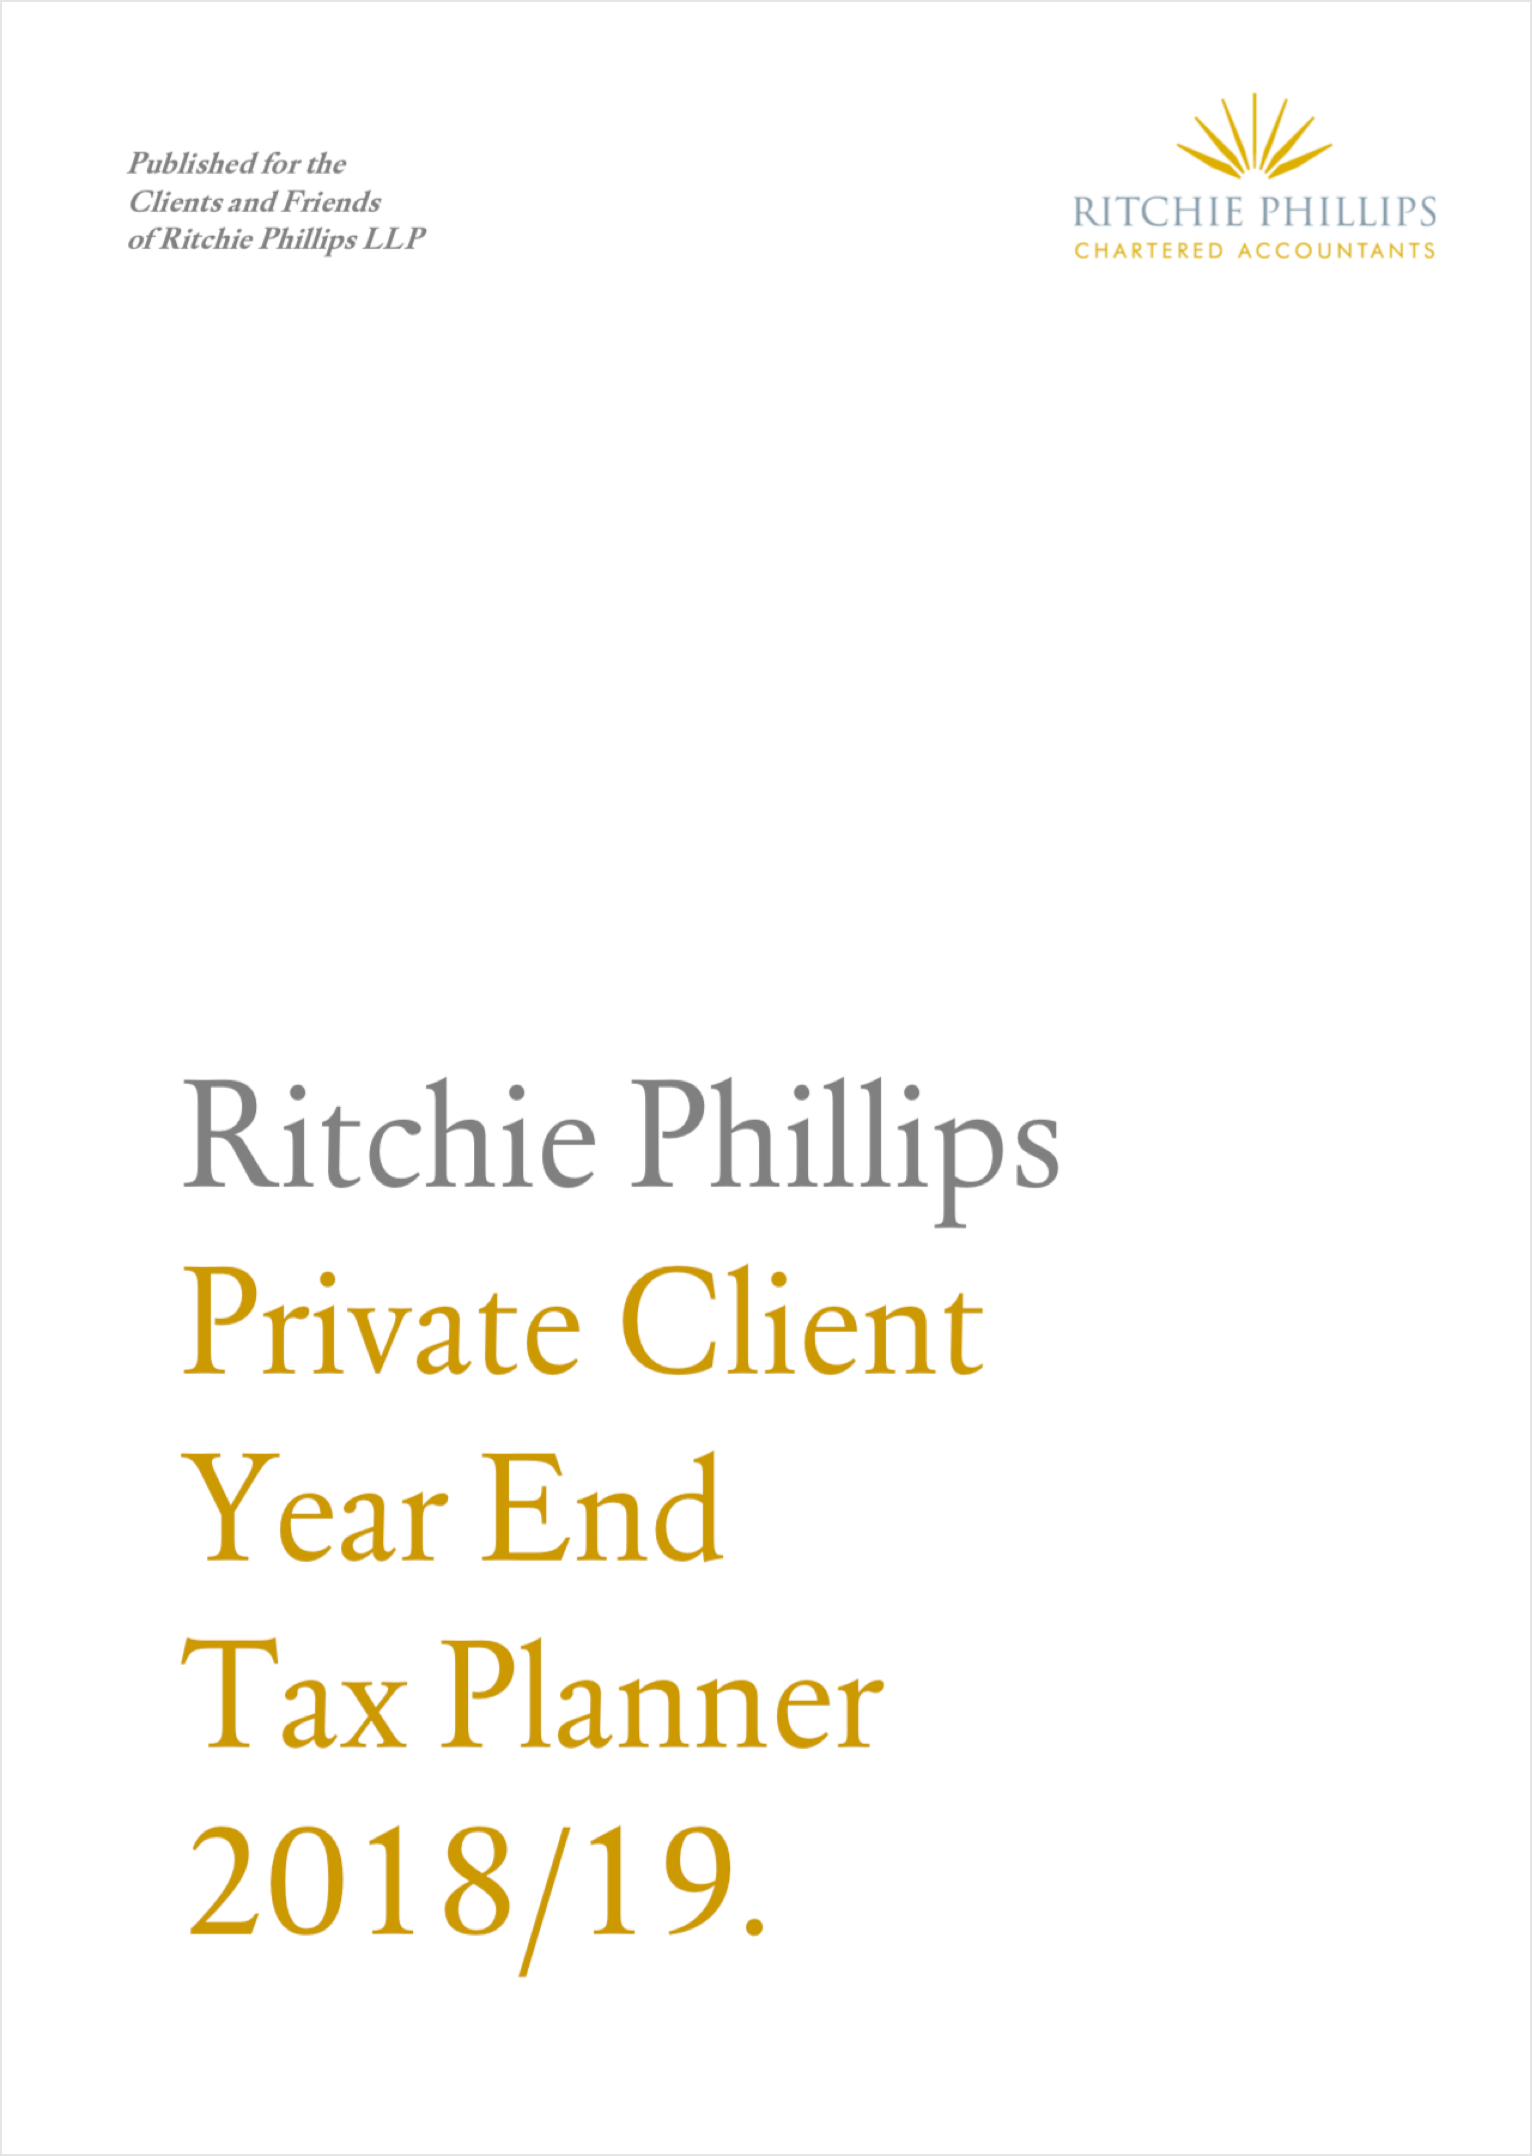 img-pdf-cover-tax-planner-2018-19